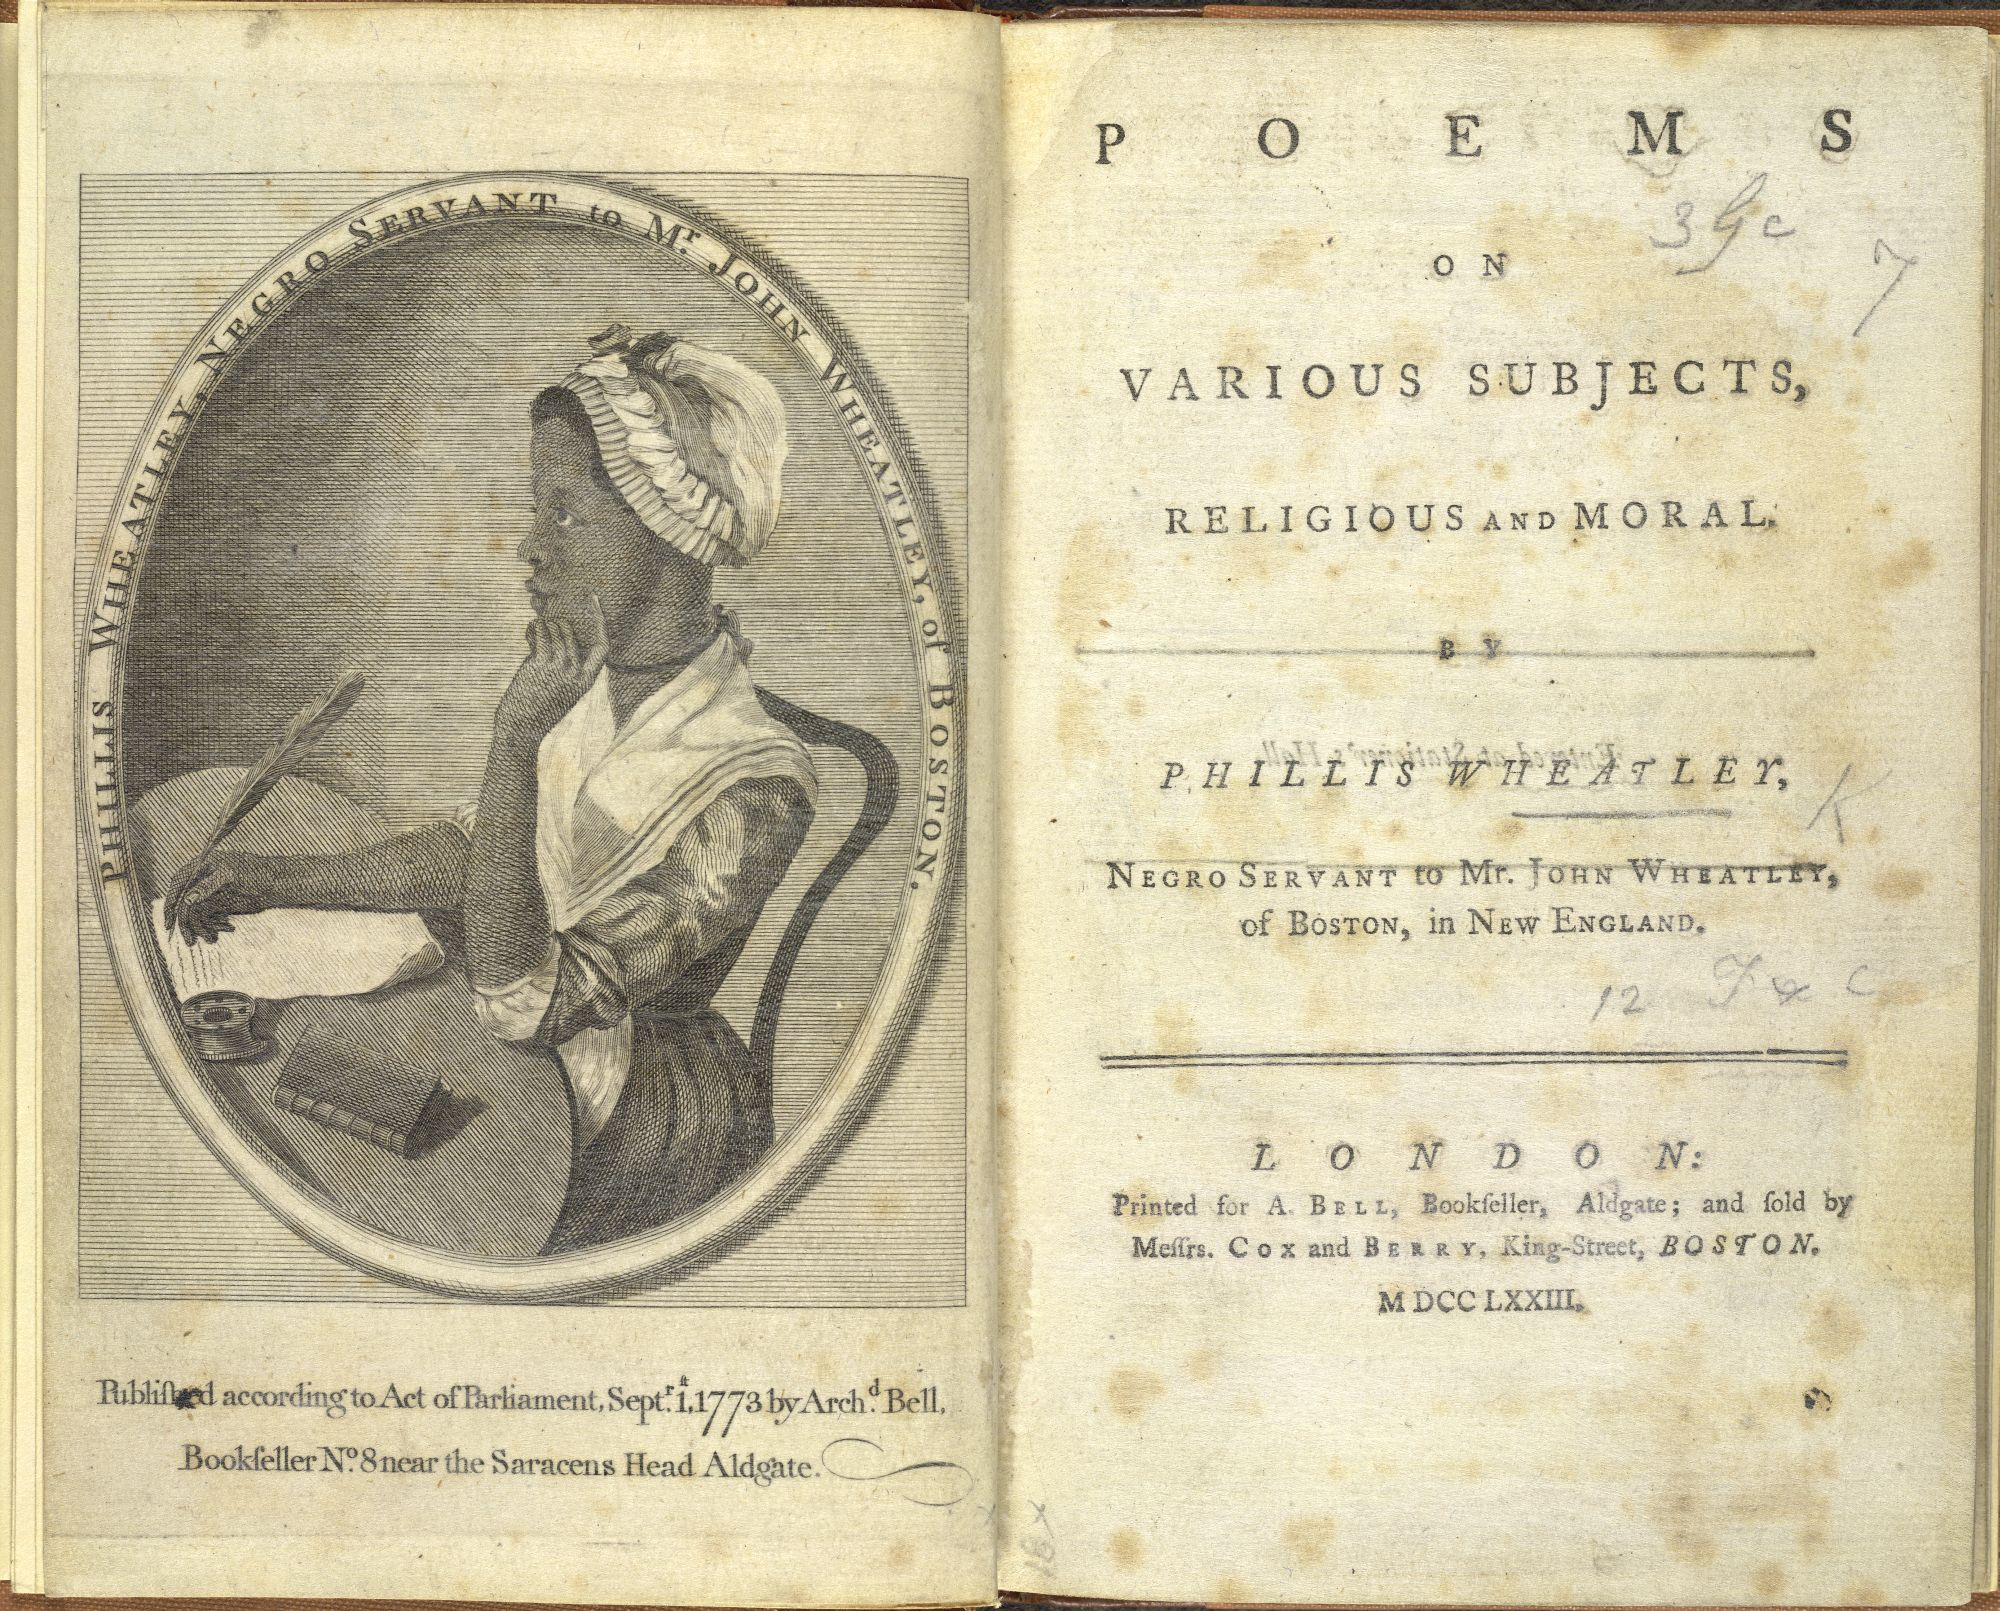 Title page of Phillis Wheatley, Poems on various subjects, religious and moral